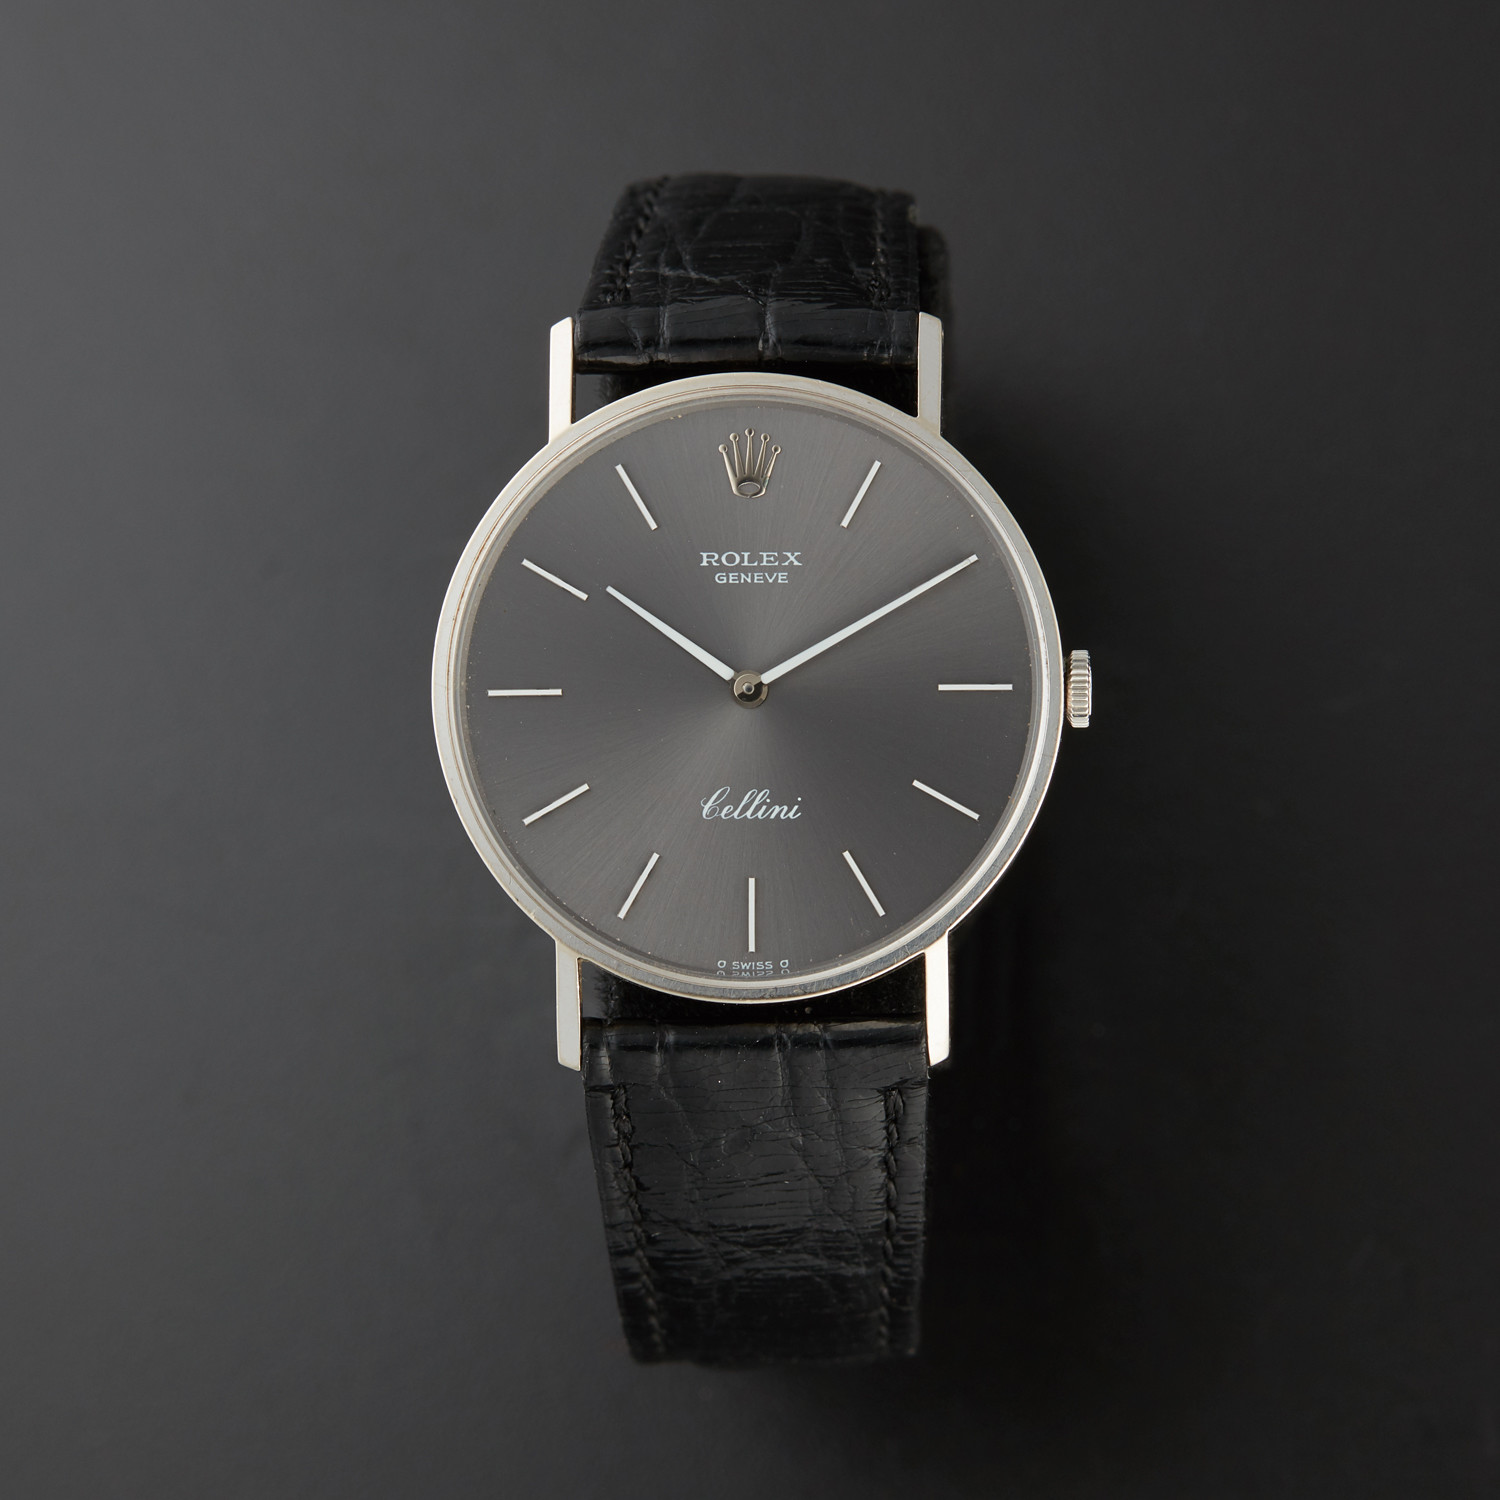 Rolex Vintage Cellini Manual Wind // 3833 // Pre,Owned